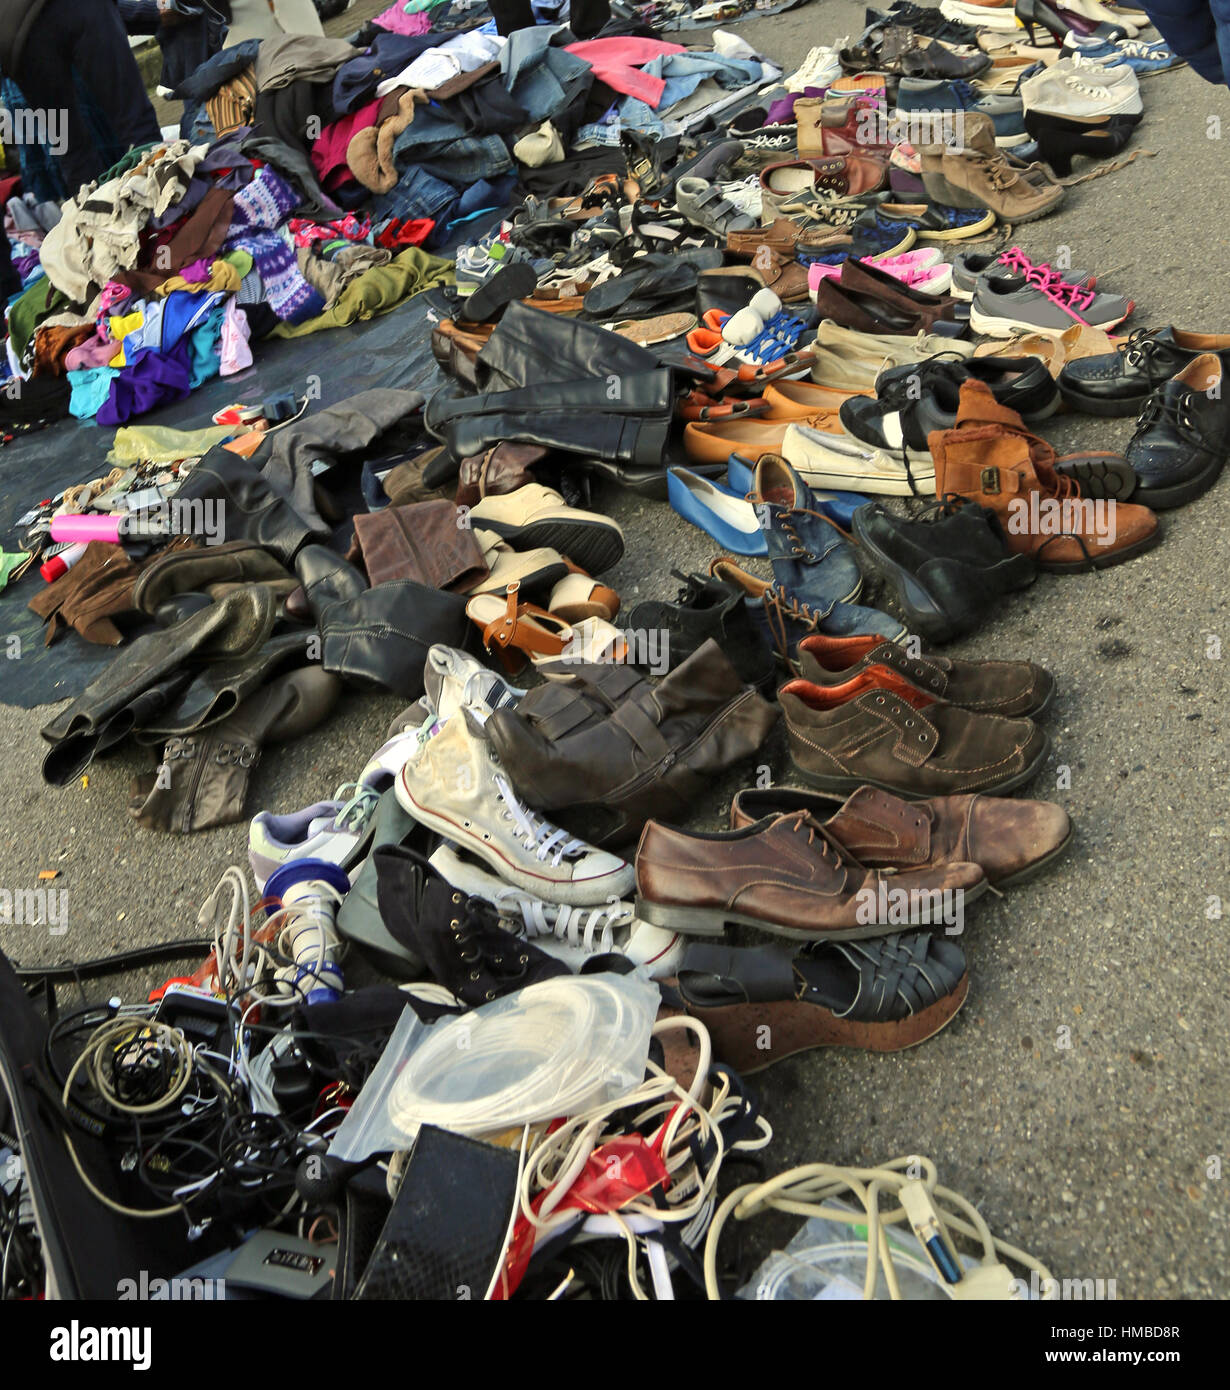 used clothes for sale at outdoor flea market with shoes and old ...